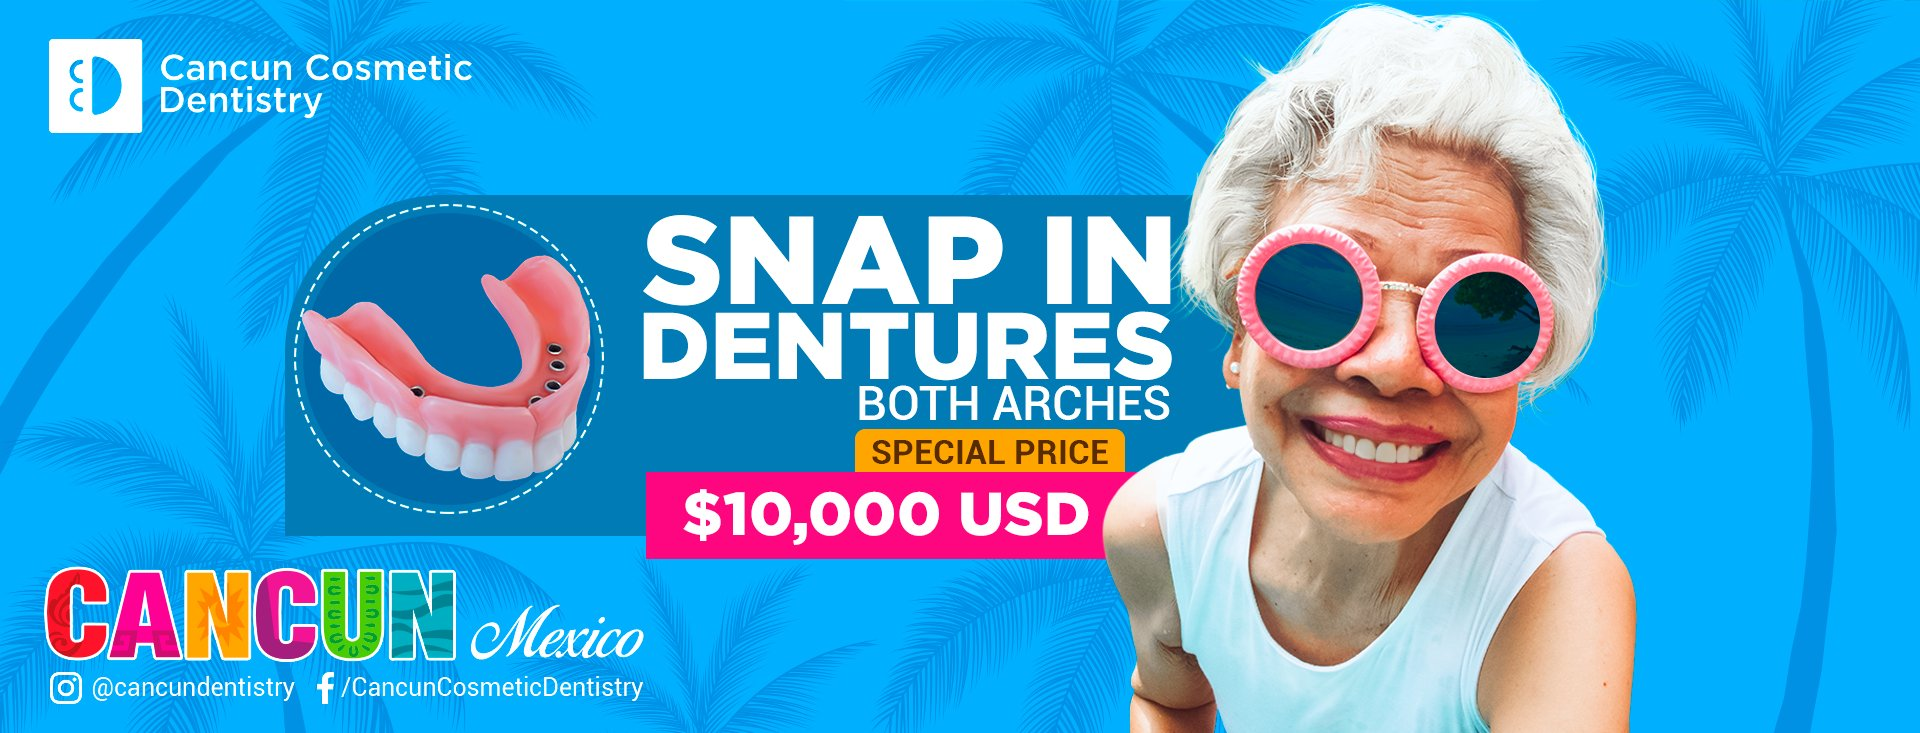 SNAP-IN-DENTURES